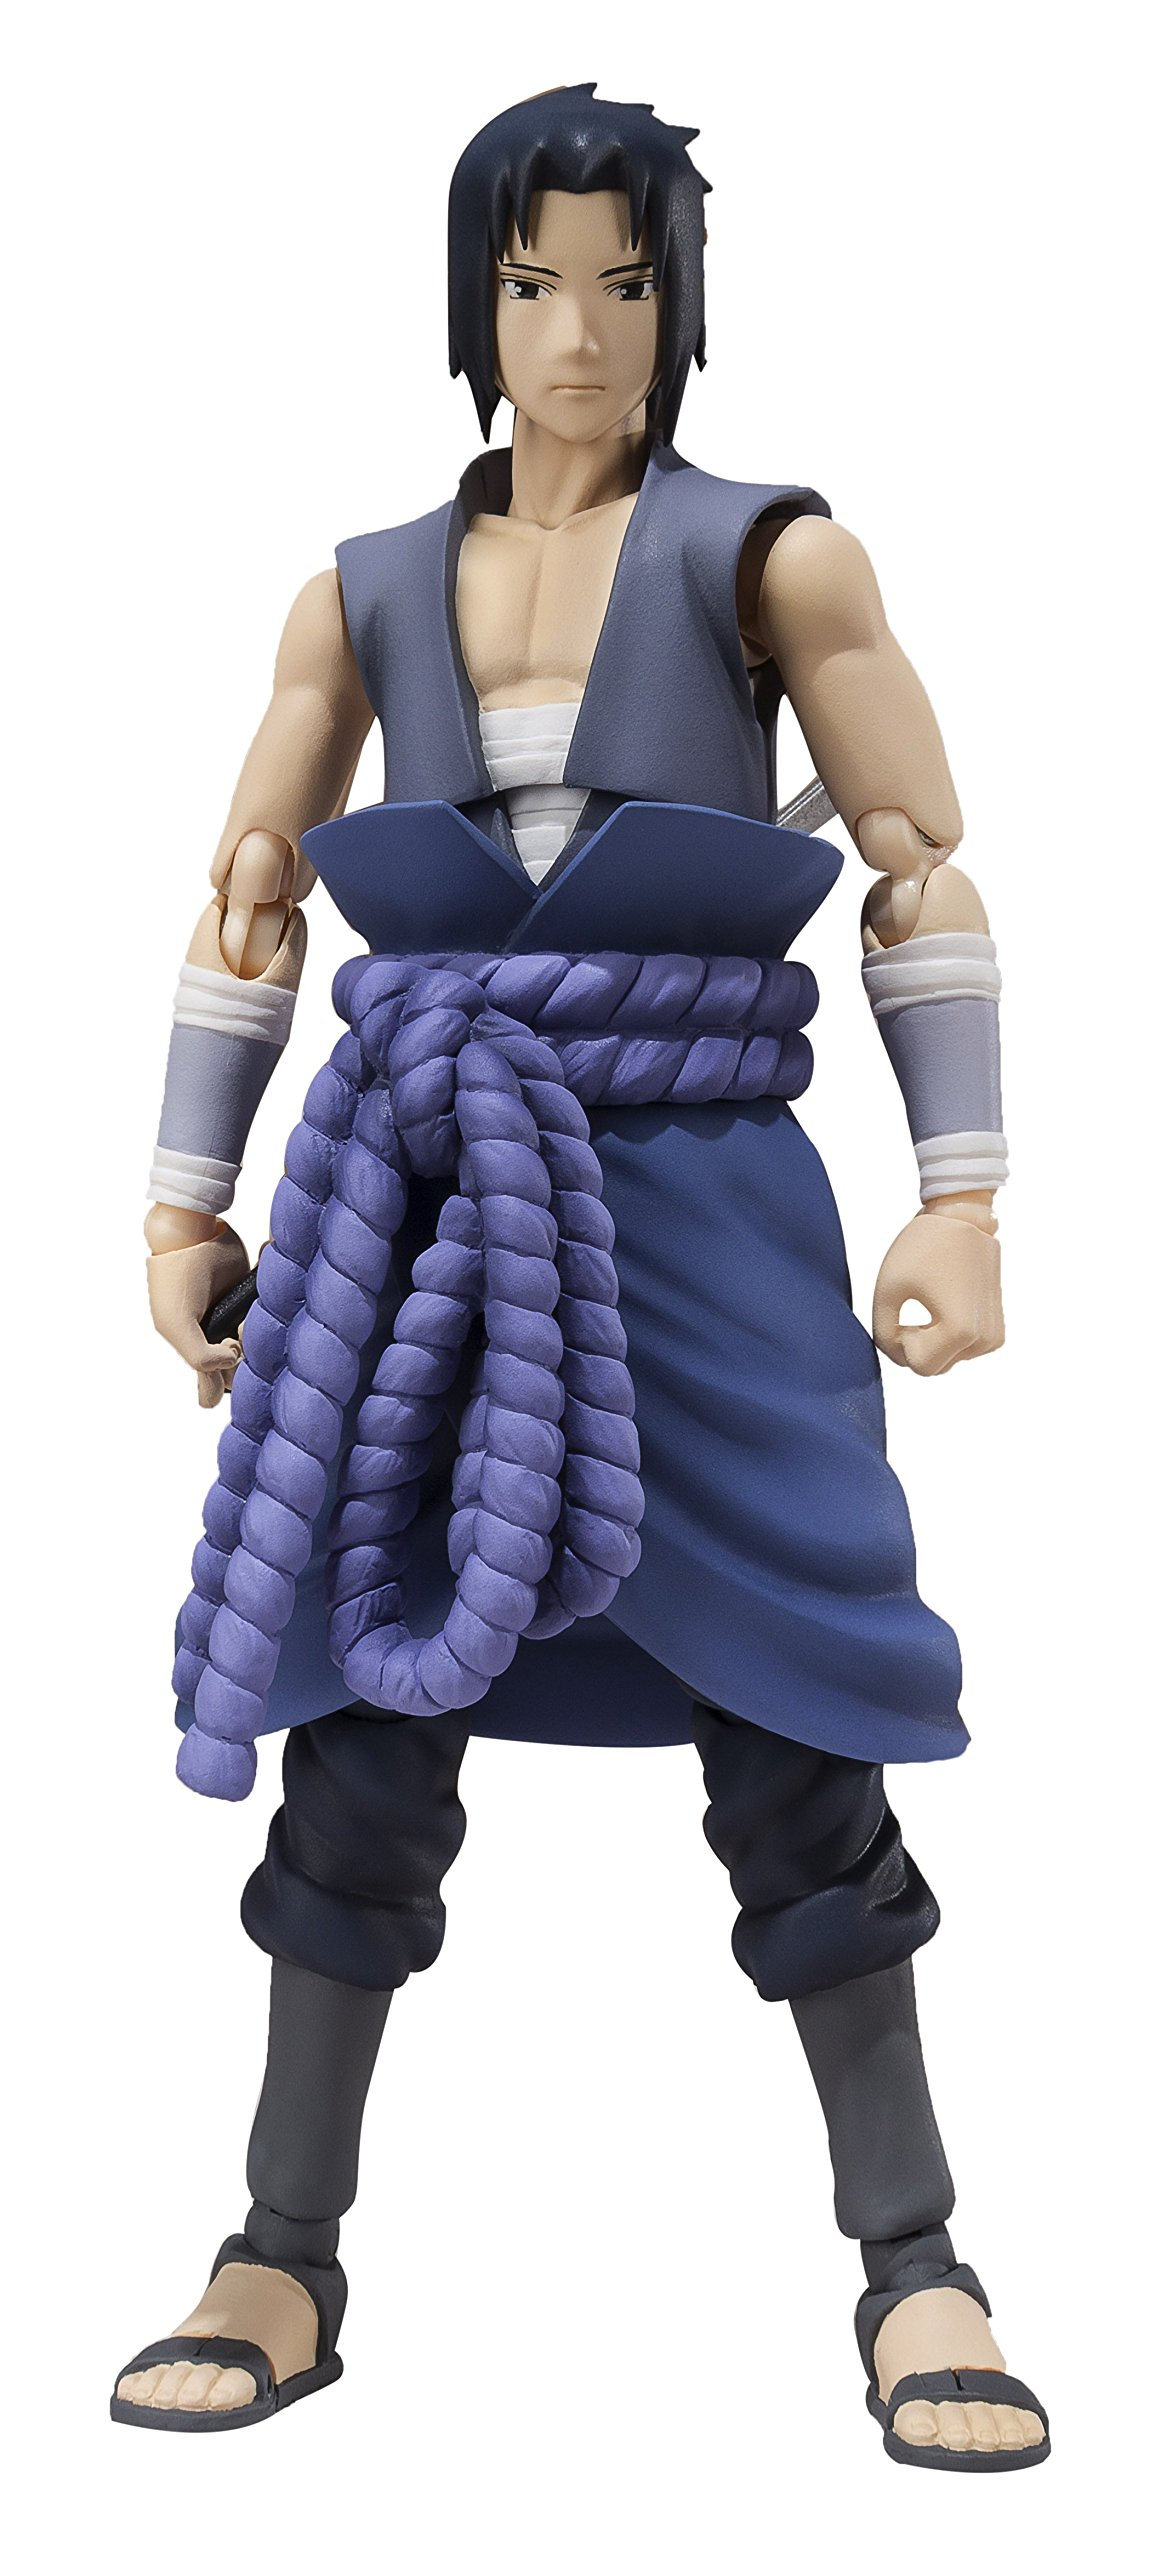 Bandai Tamashii Nations Naruto Shippuden Sasuke Uchiha S.H. Figuarts Action Figure (Itachi Battle) by Tamashii Nations